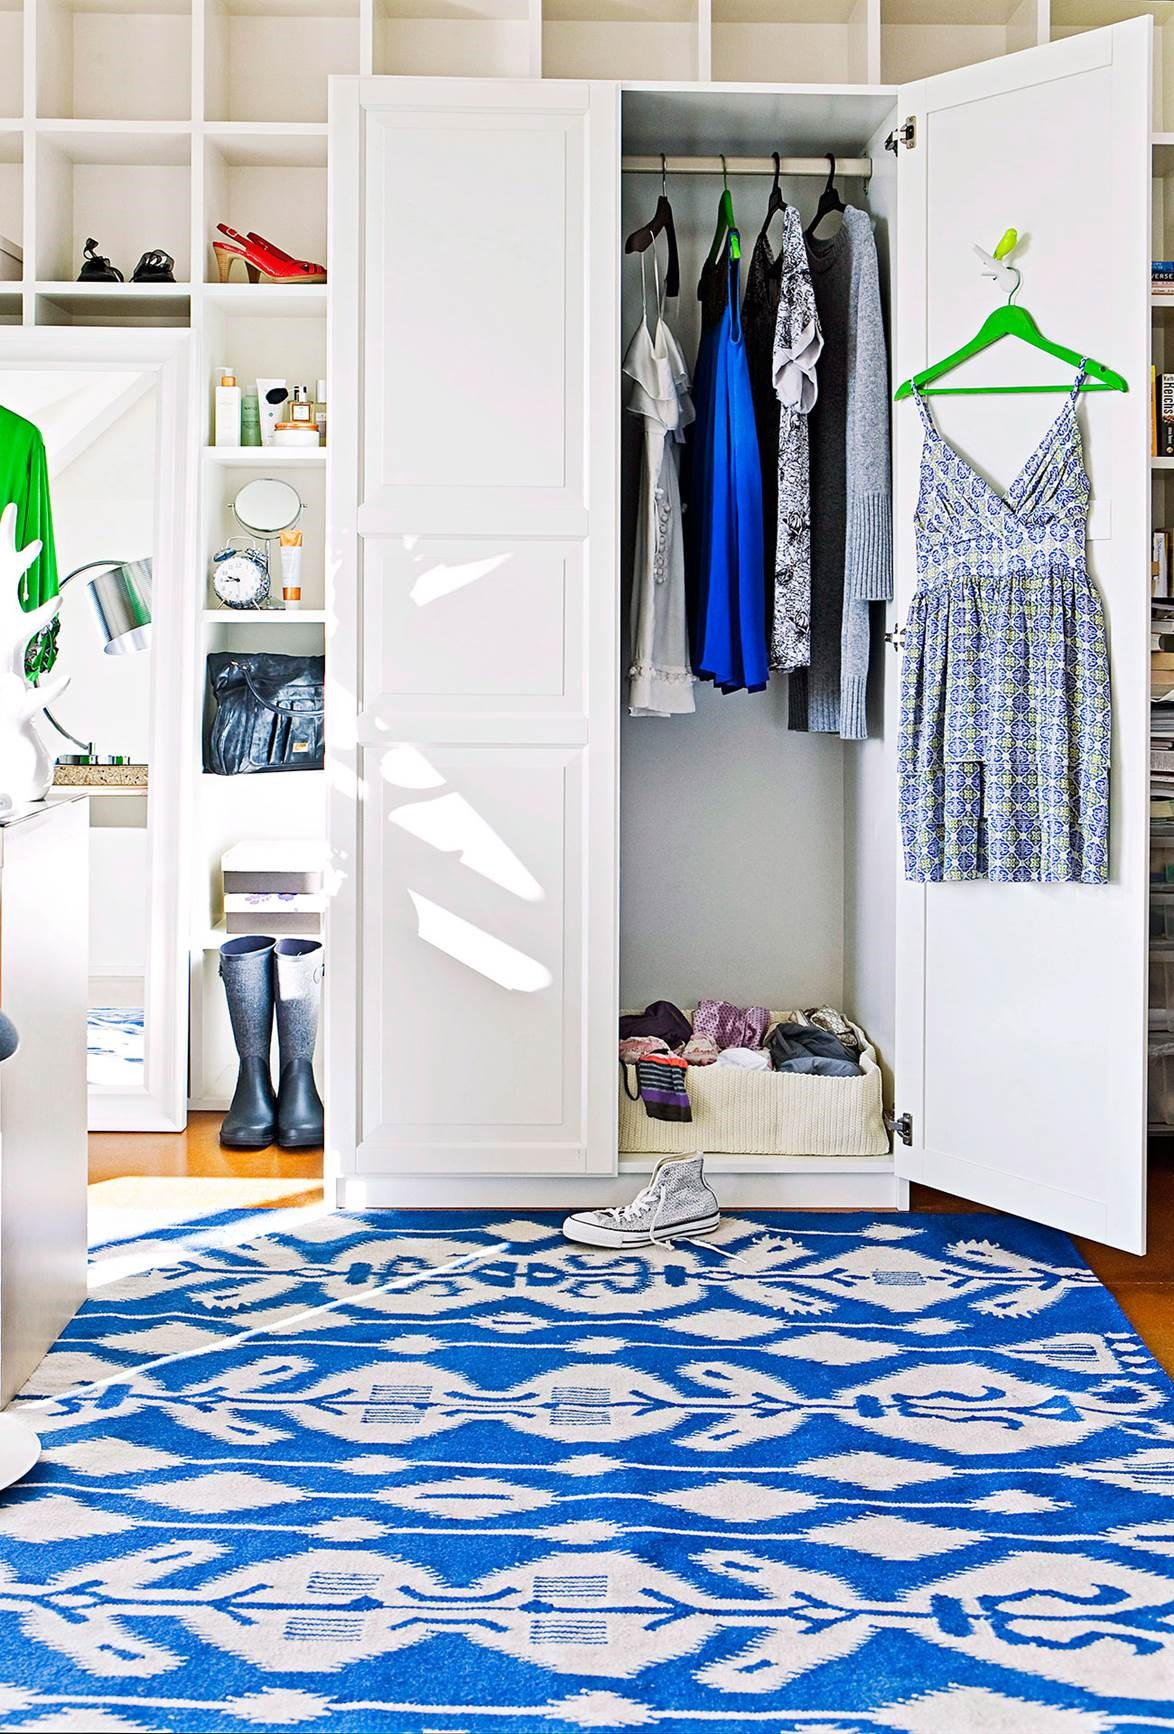 Small open-shelved compartments allow you to display your favourite shoes and bags, and give you easy-access to everyday essentials. *Photo:* Maree Homer / *bauersyndication.com.au*